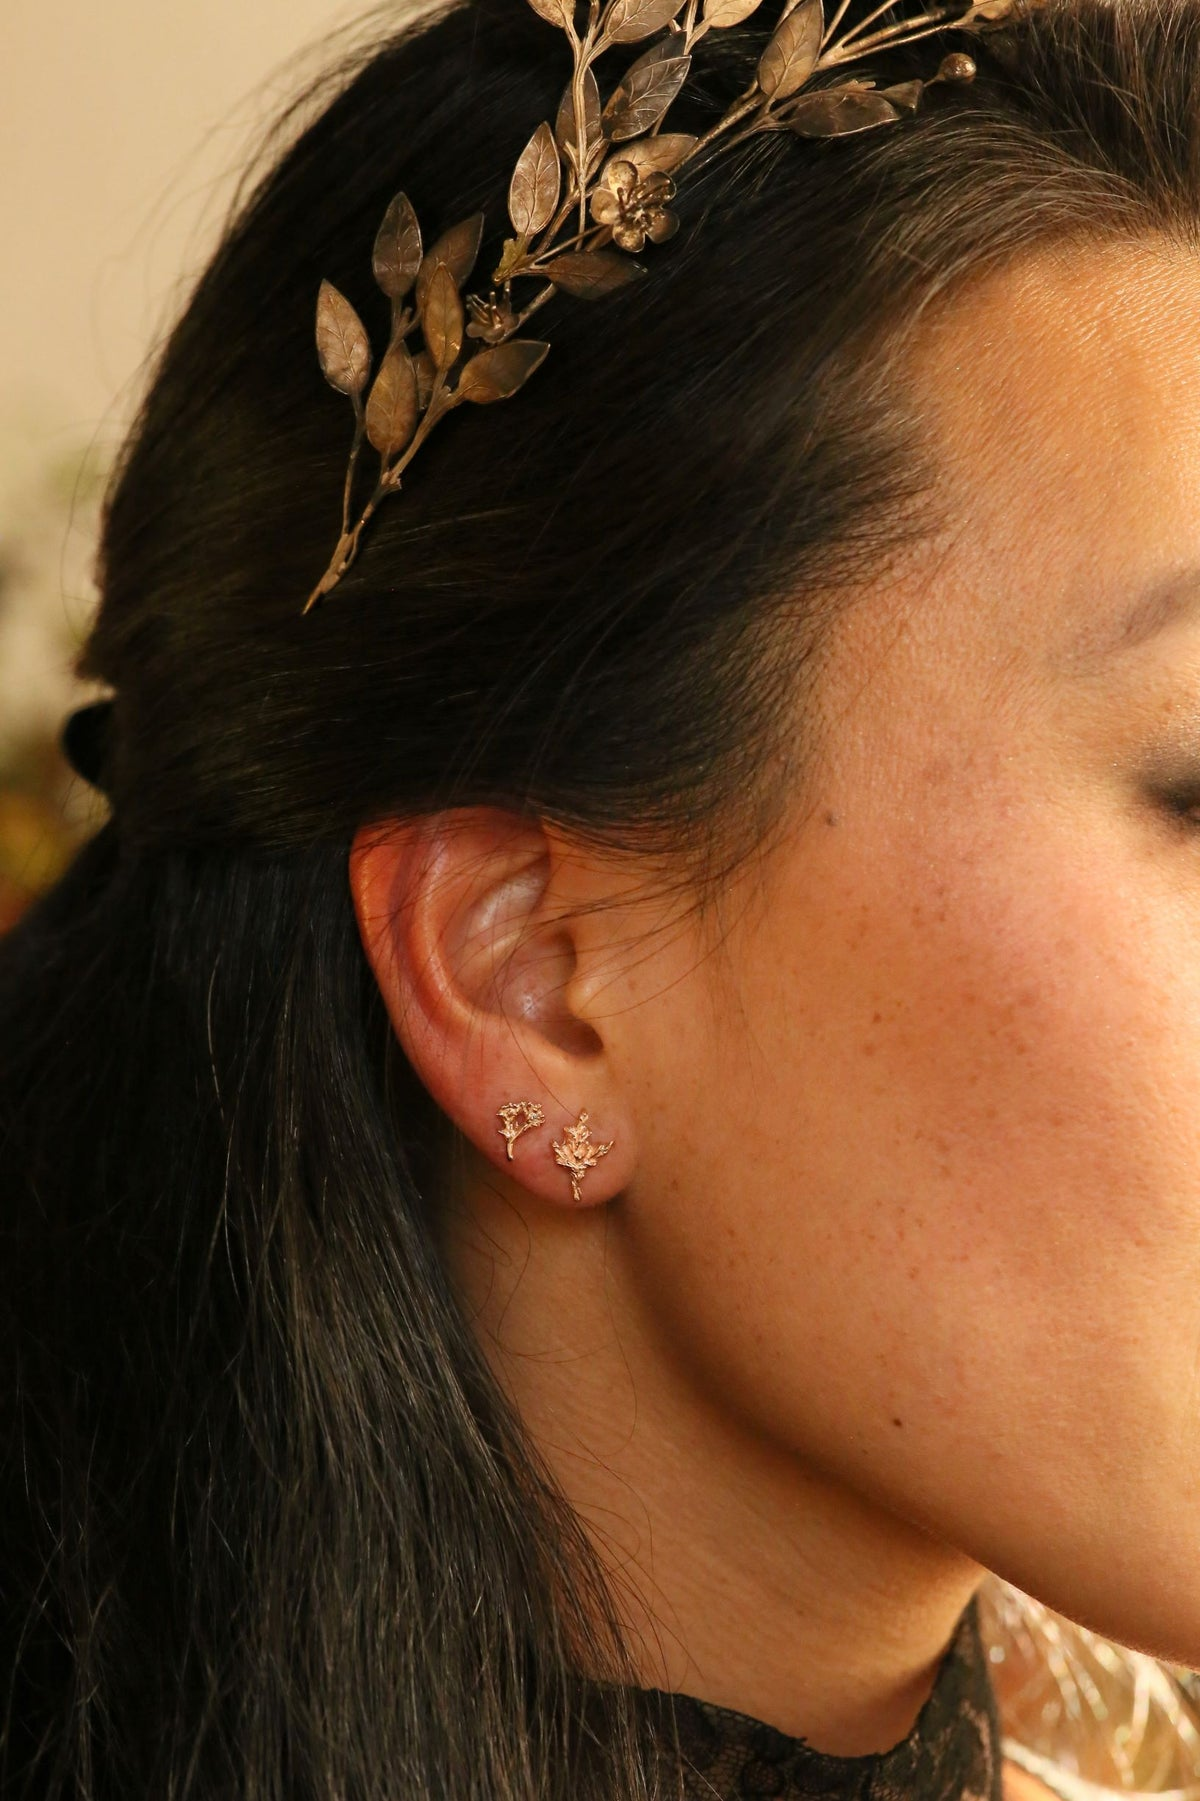 The Meadowsweet Single Earring